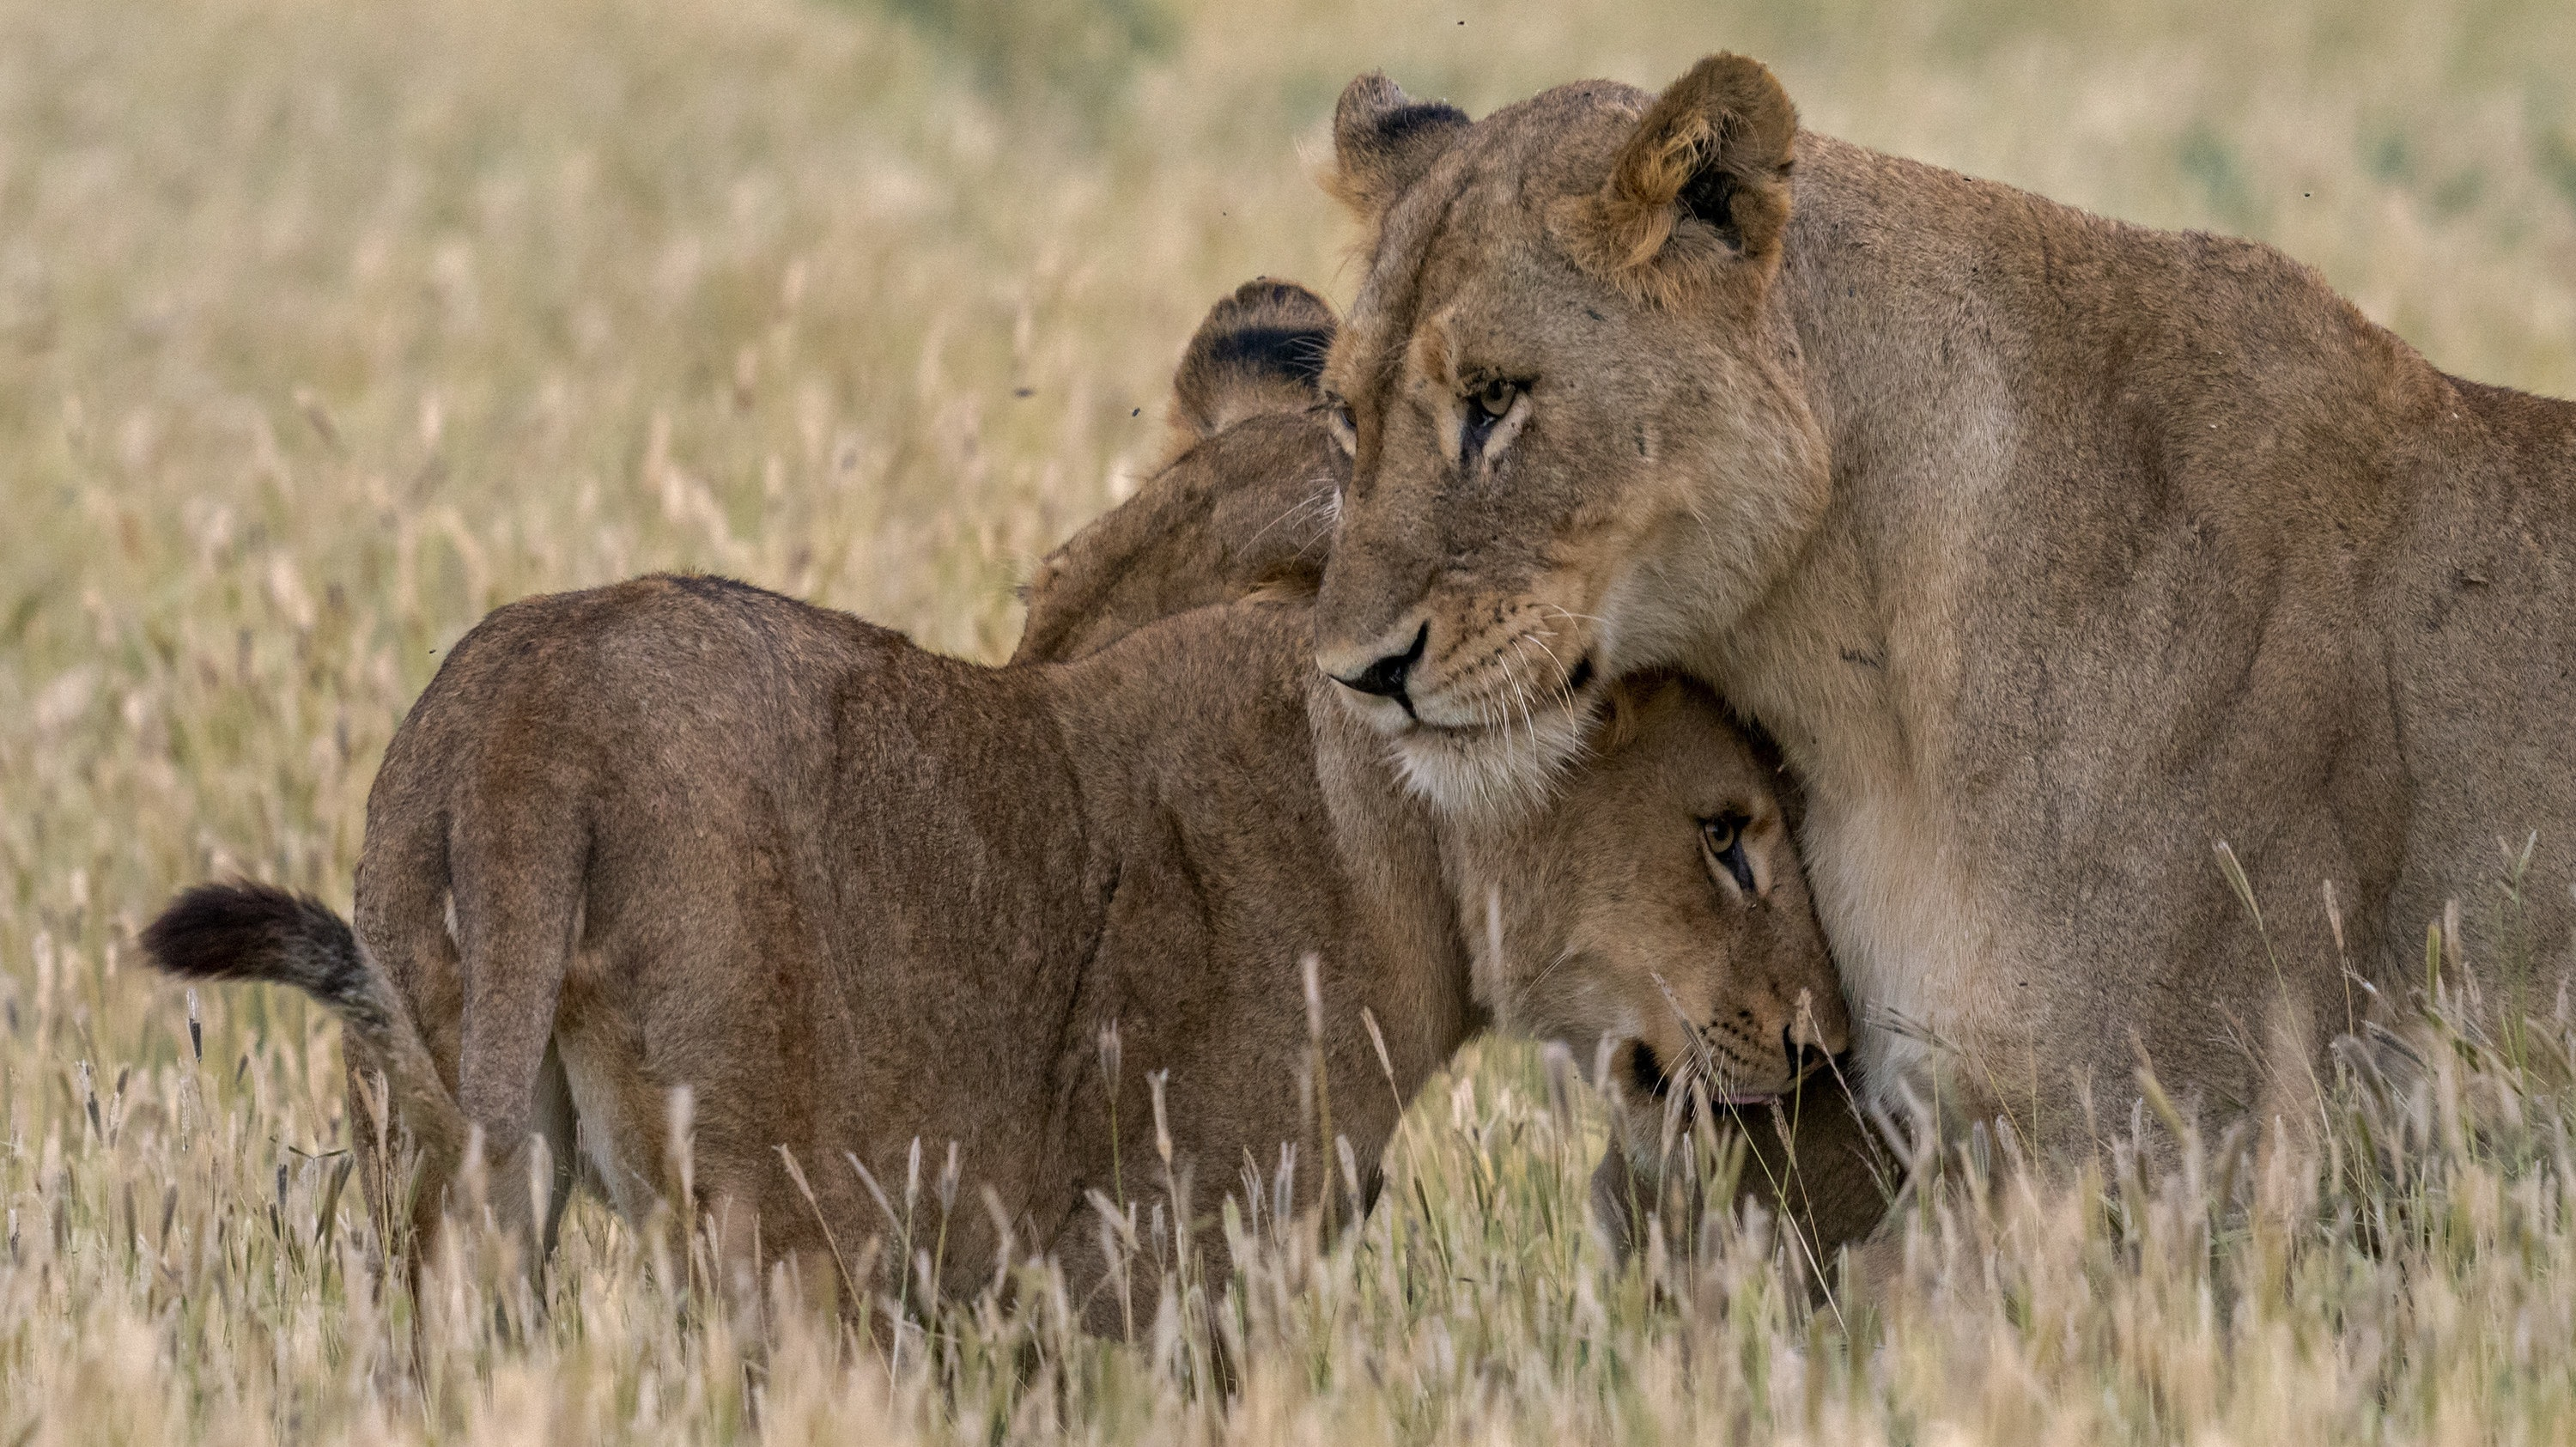 Ama protects Nuru and Issa. (National Geographic for Disney+/Russell MacLaughlin)